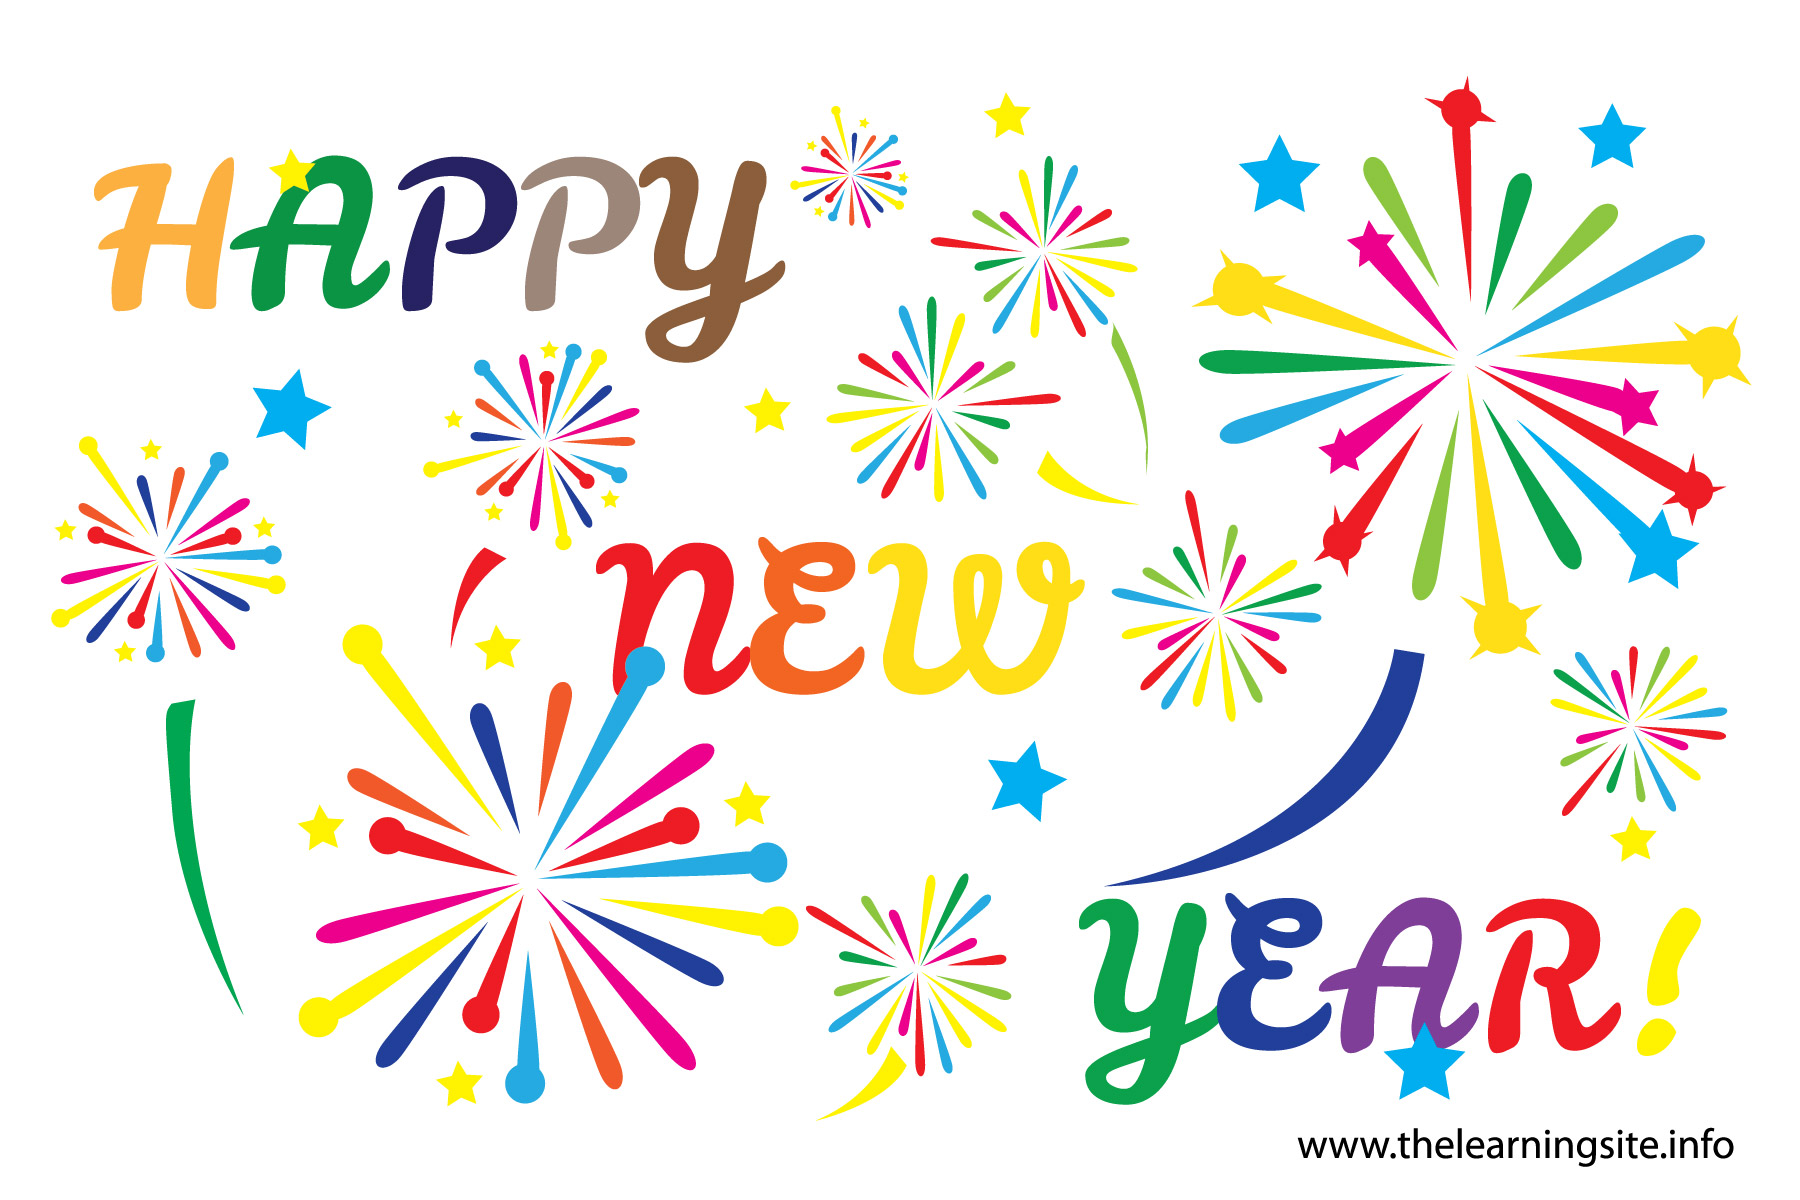 Happy New Year Clipart Free For 2015-Happy New Year Clipart Free For 2015-13